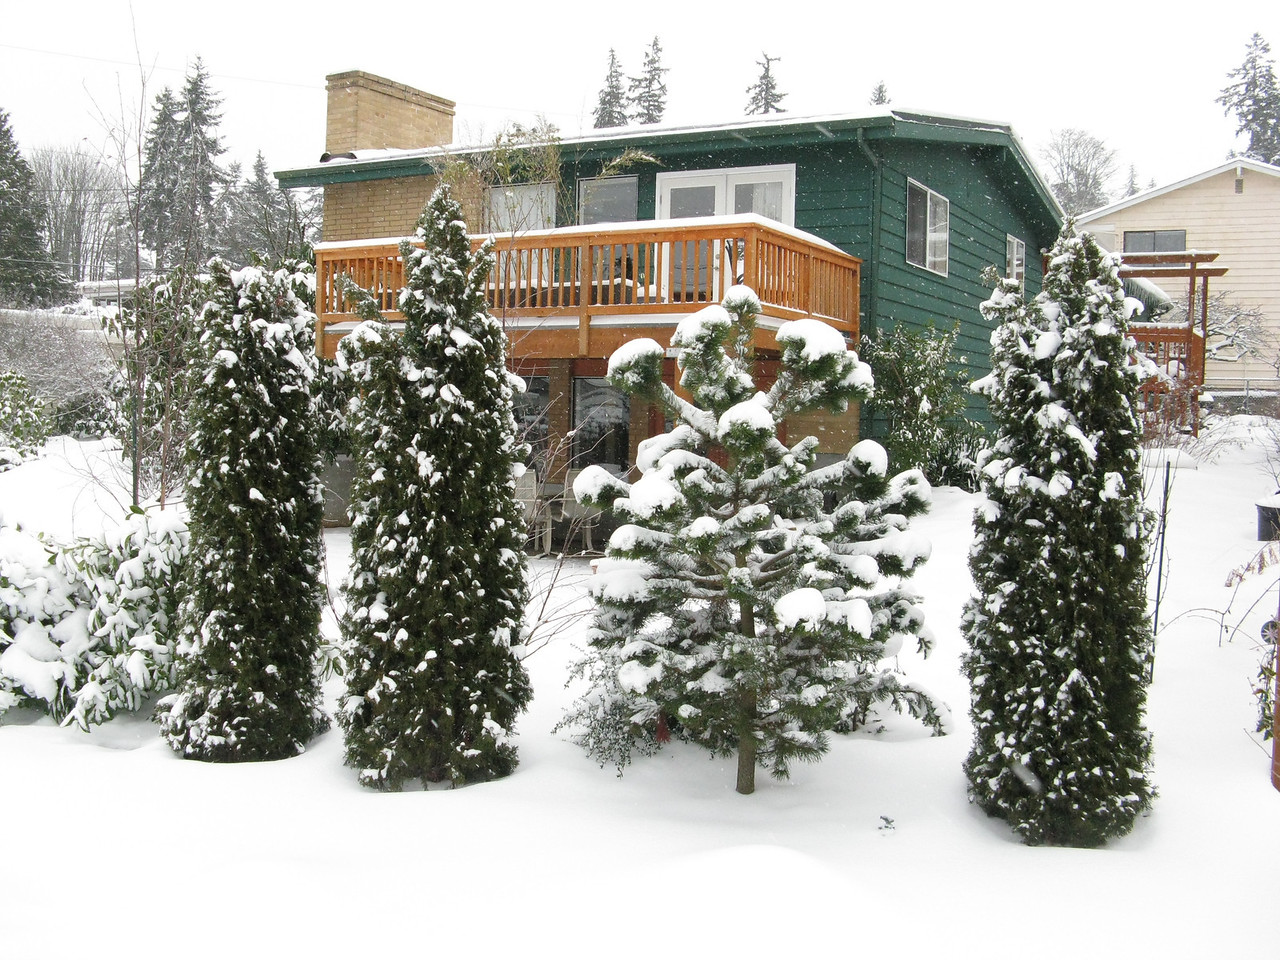 The west deck from the street with 3 pyrmadalis bushes and pine tree.